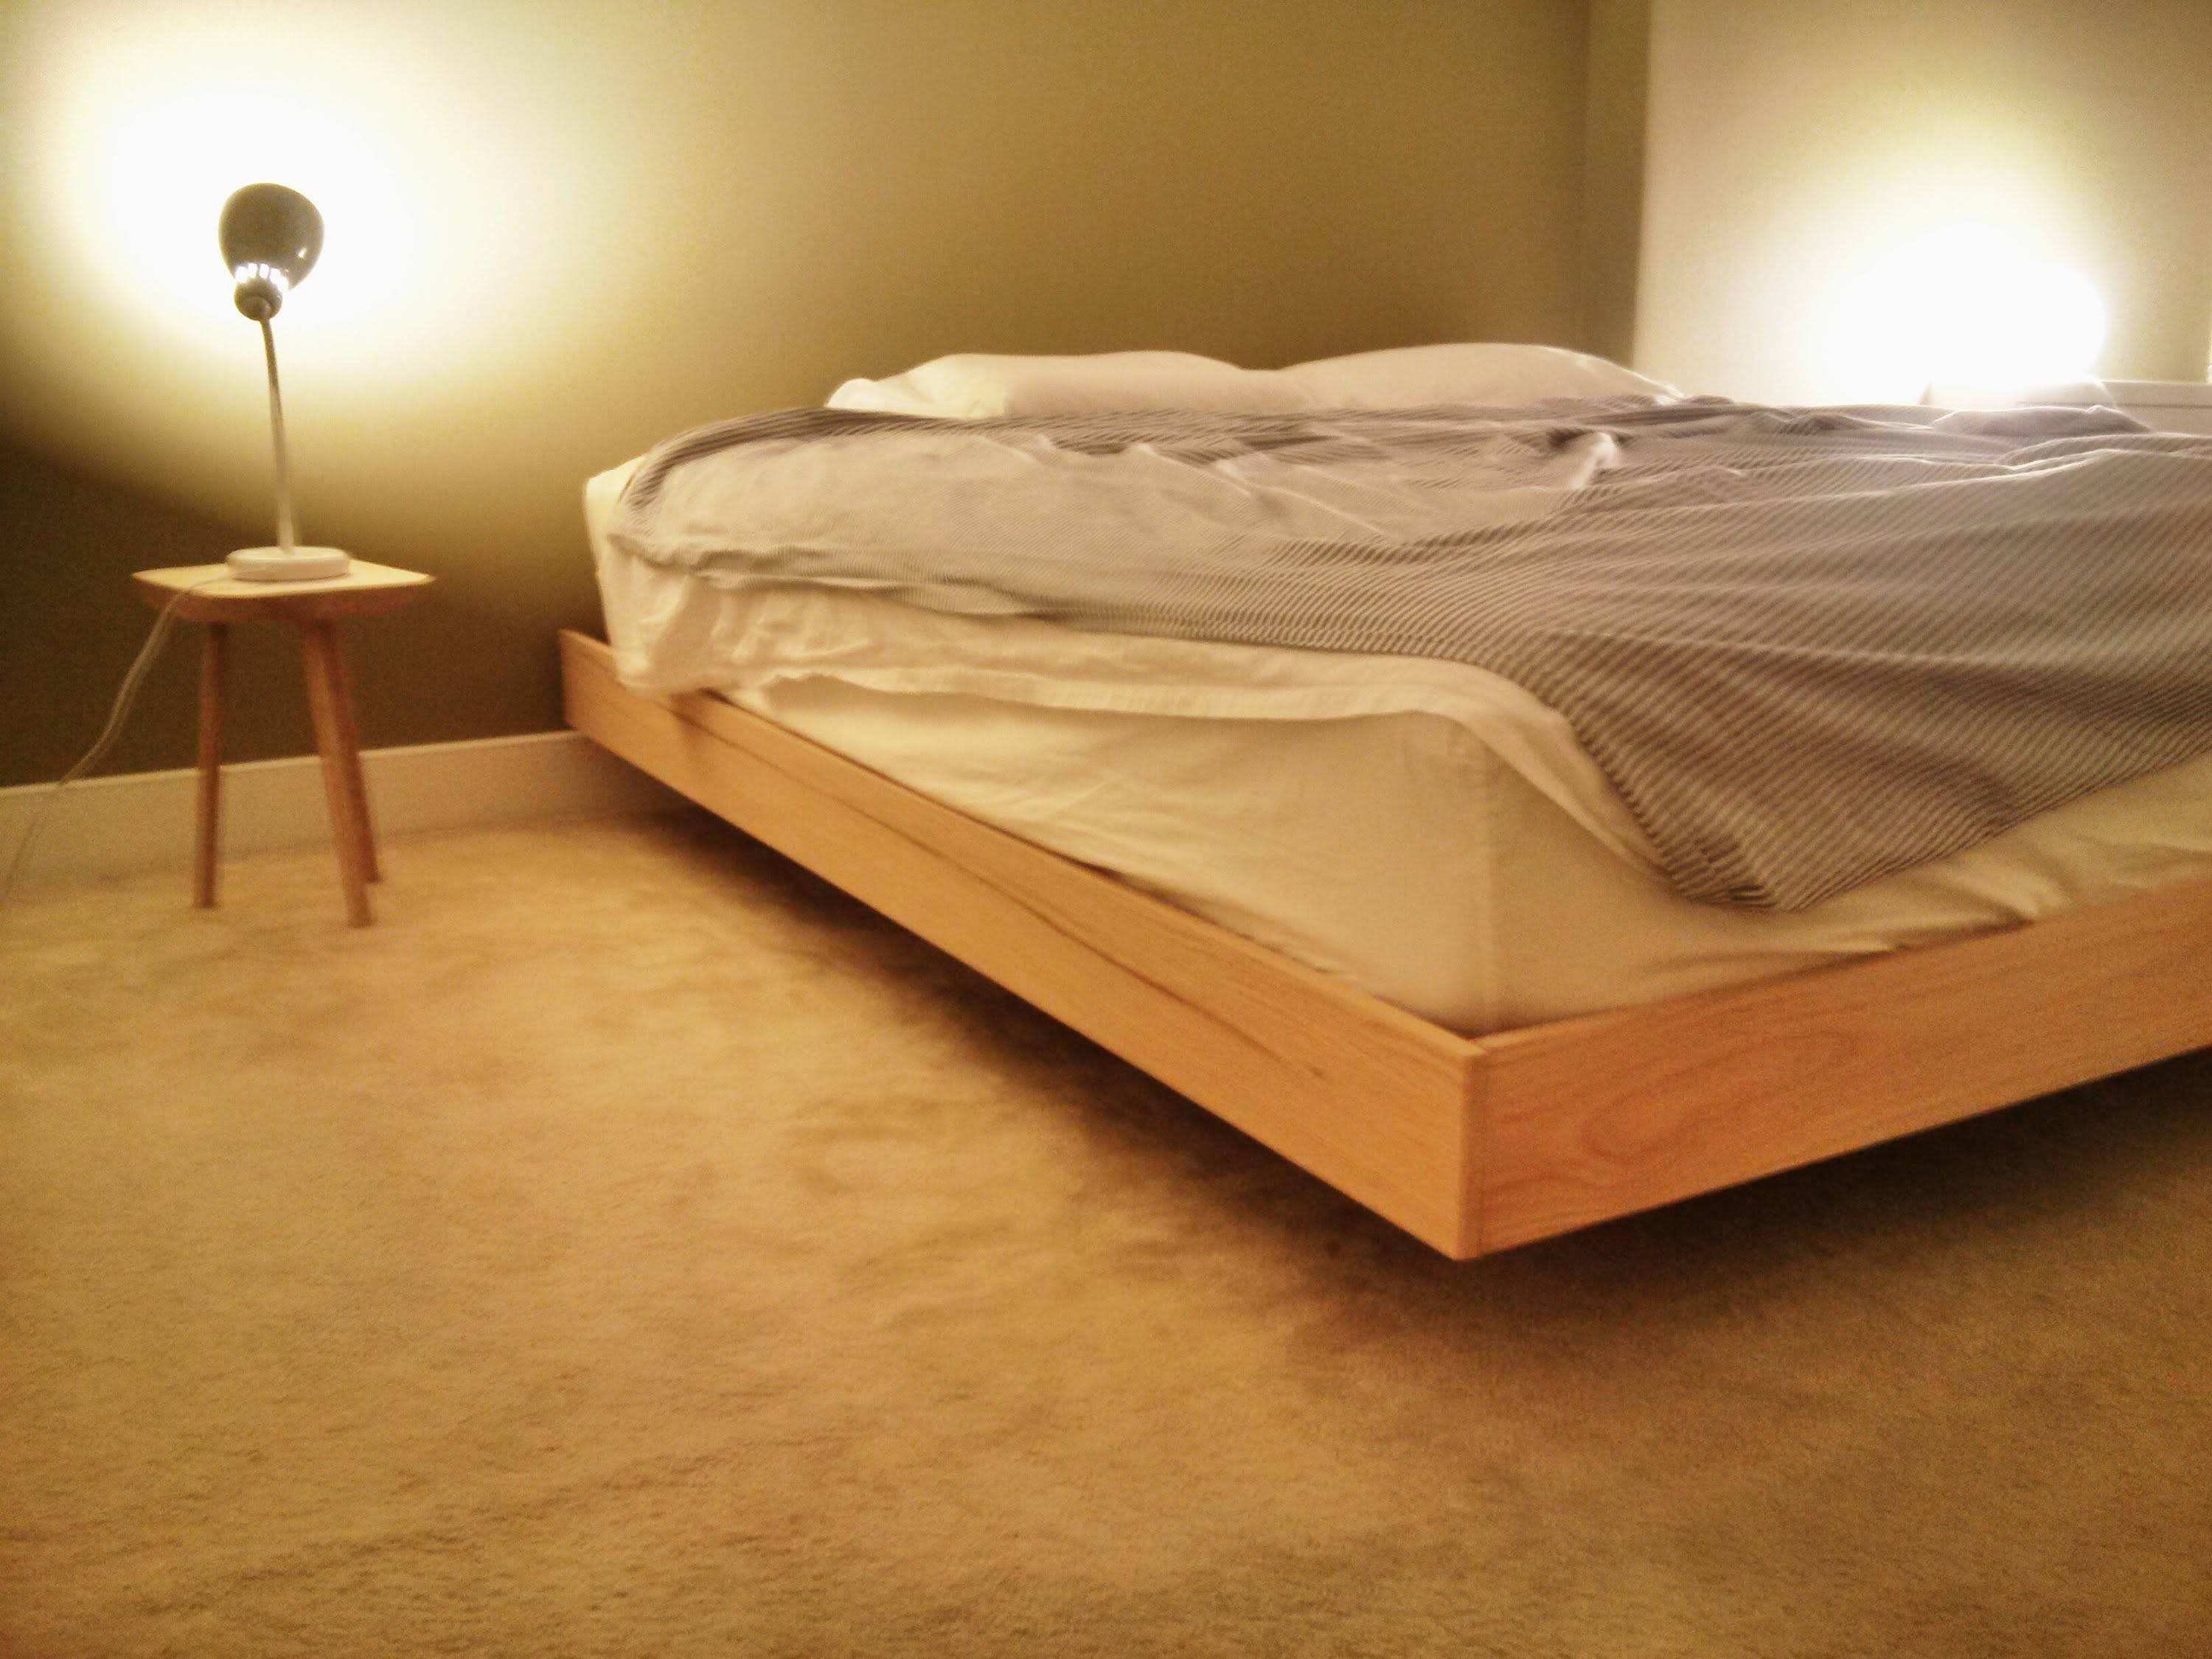 Discount Bed Frames Near Me Unique Build King Bed Frame Luxury Wood